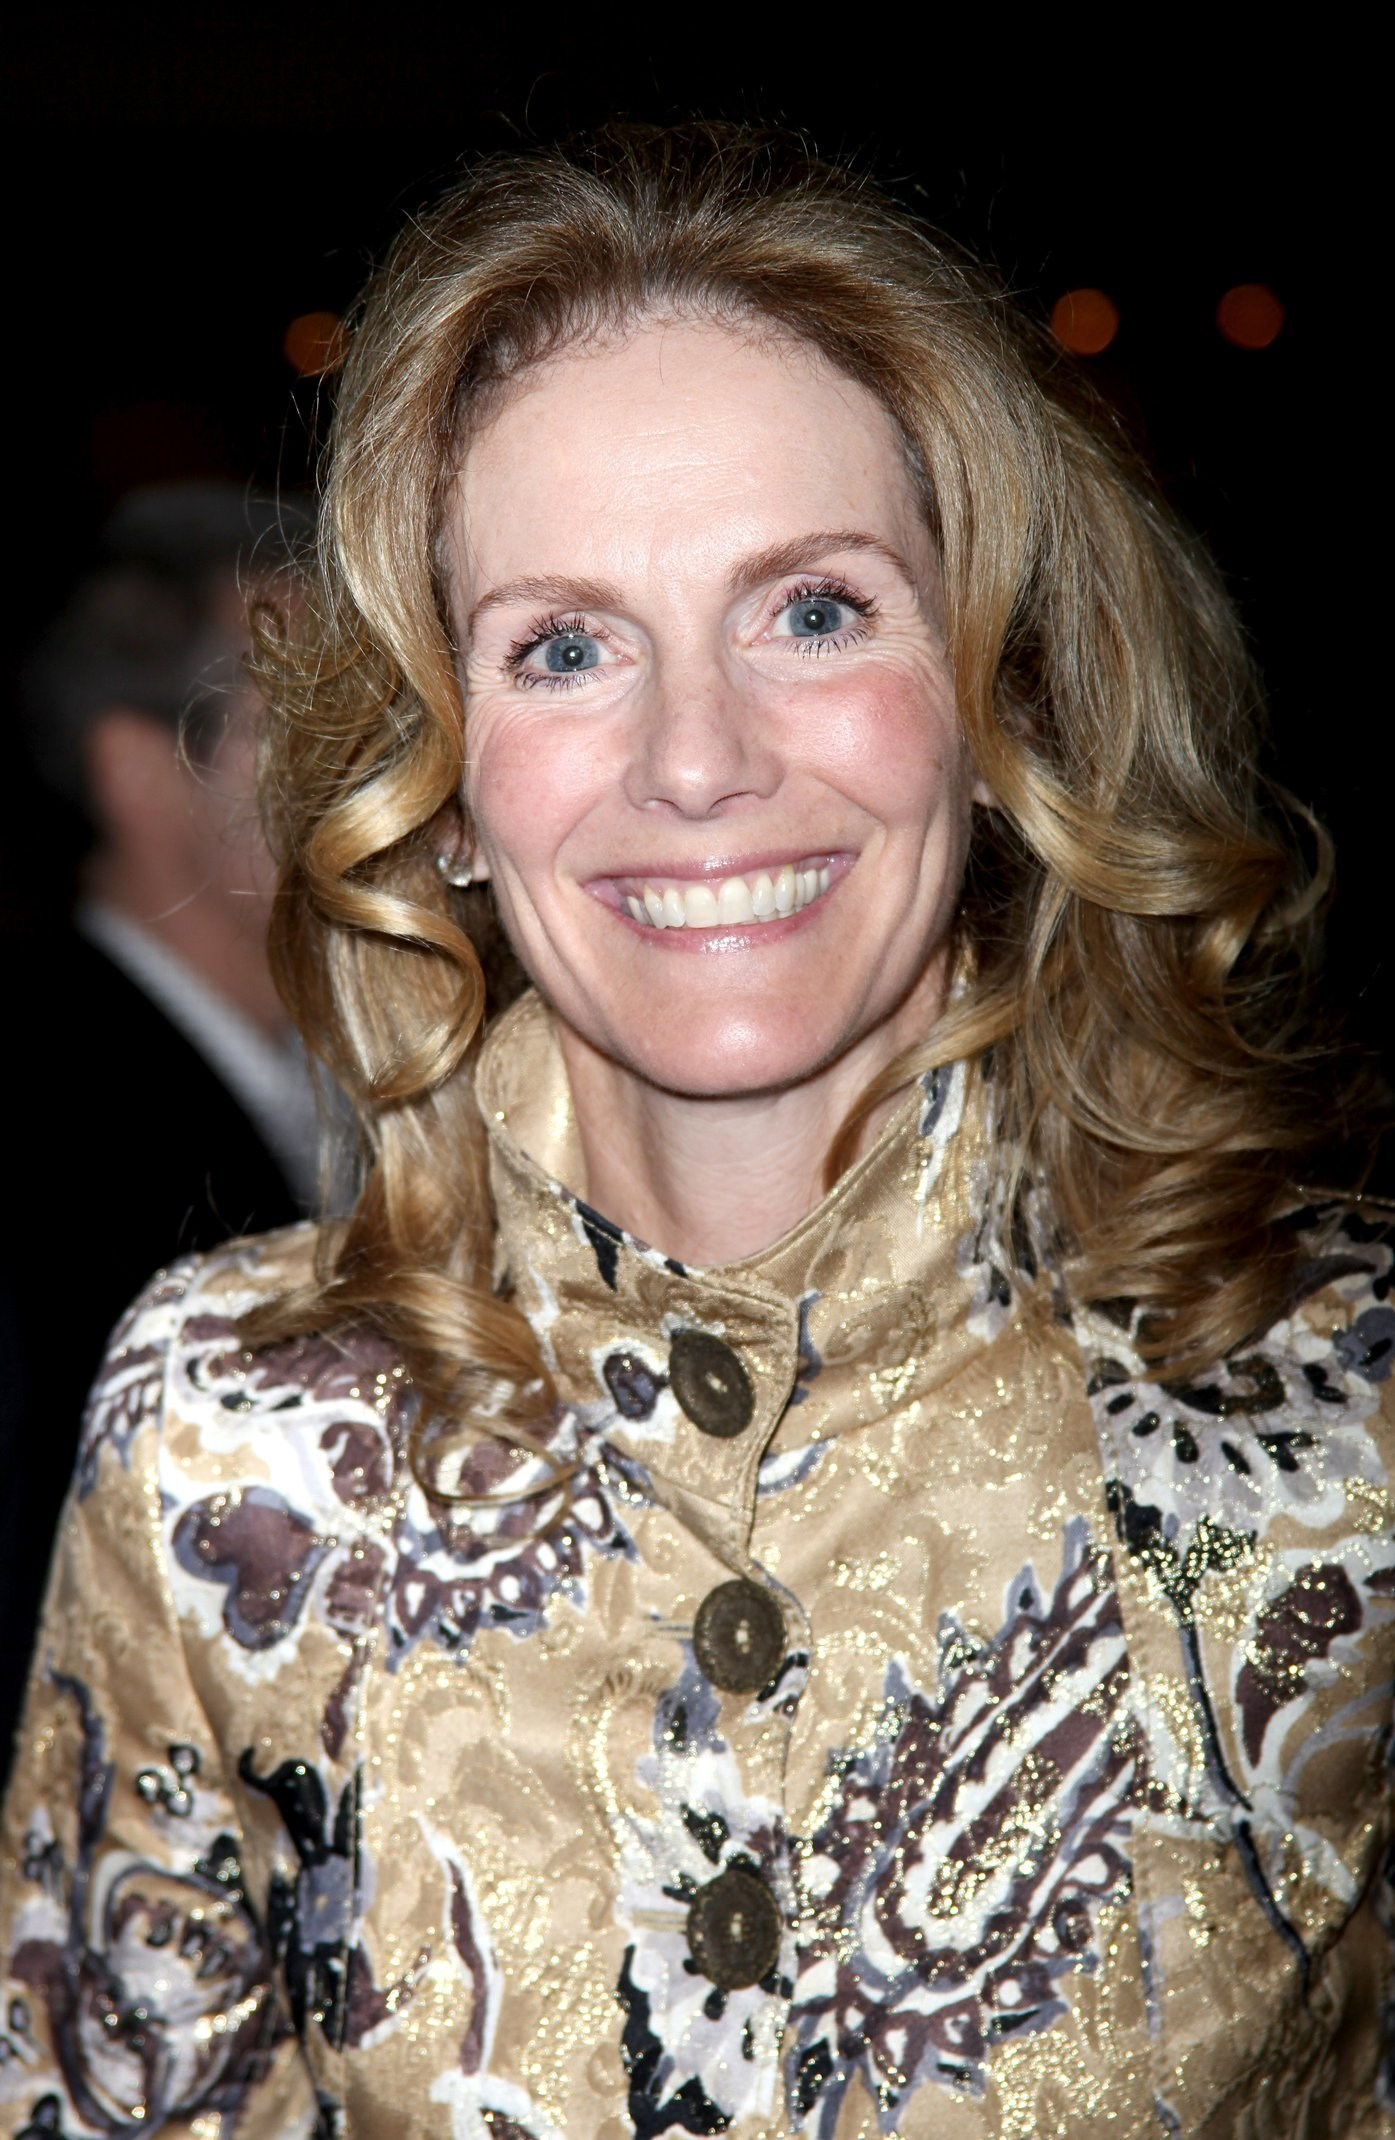 Julie Hagerty | Known people - famous people news and ...